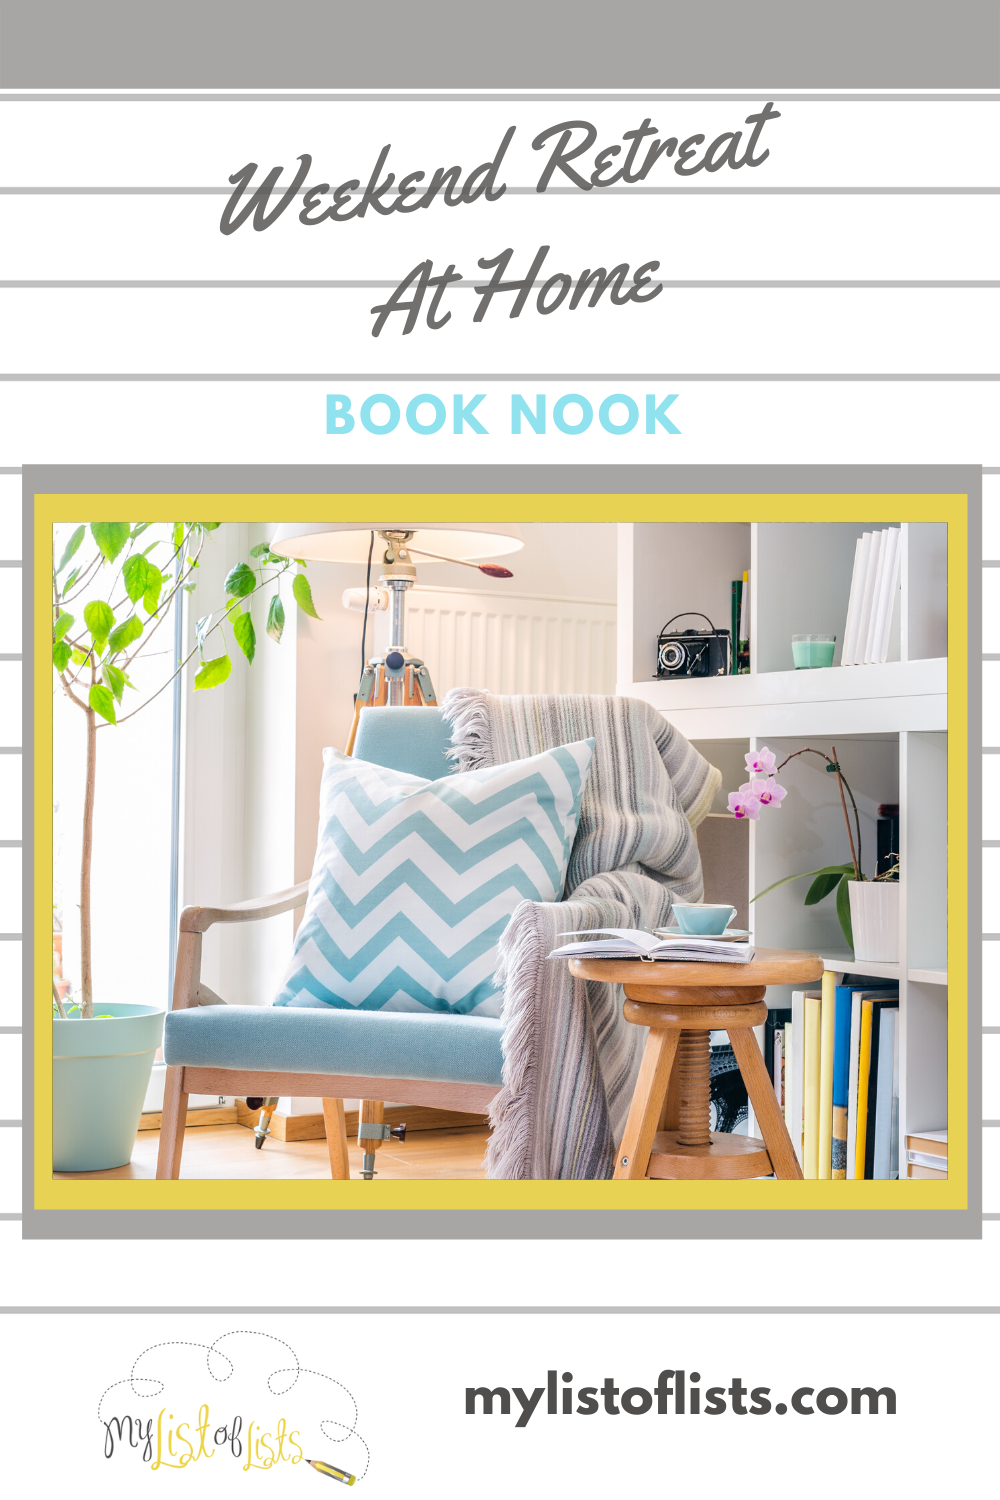 While some may think the weekends are a time to burn off some extra energy, once in a while just staying home with a good book is just what you need. Create a comfy book nook and catch up on your favorite reading. But, first, read this post for this and other ideas to have a weekend retreat at home. #weekendretreatideas #booknook #weekendathome #mylistoflistsblog